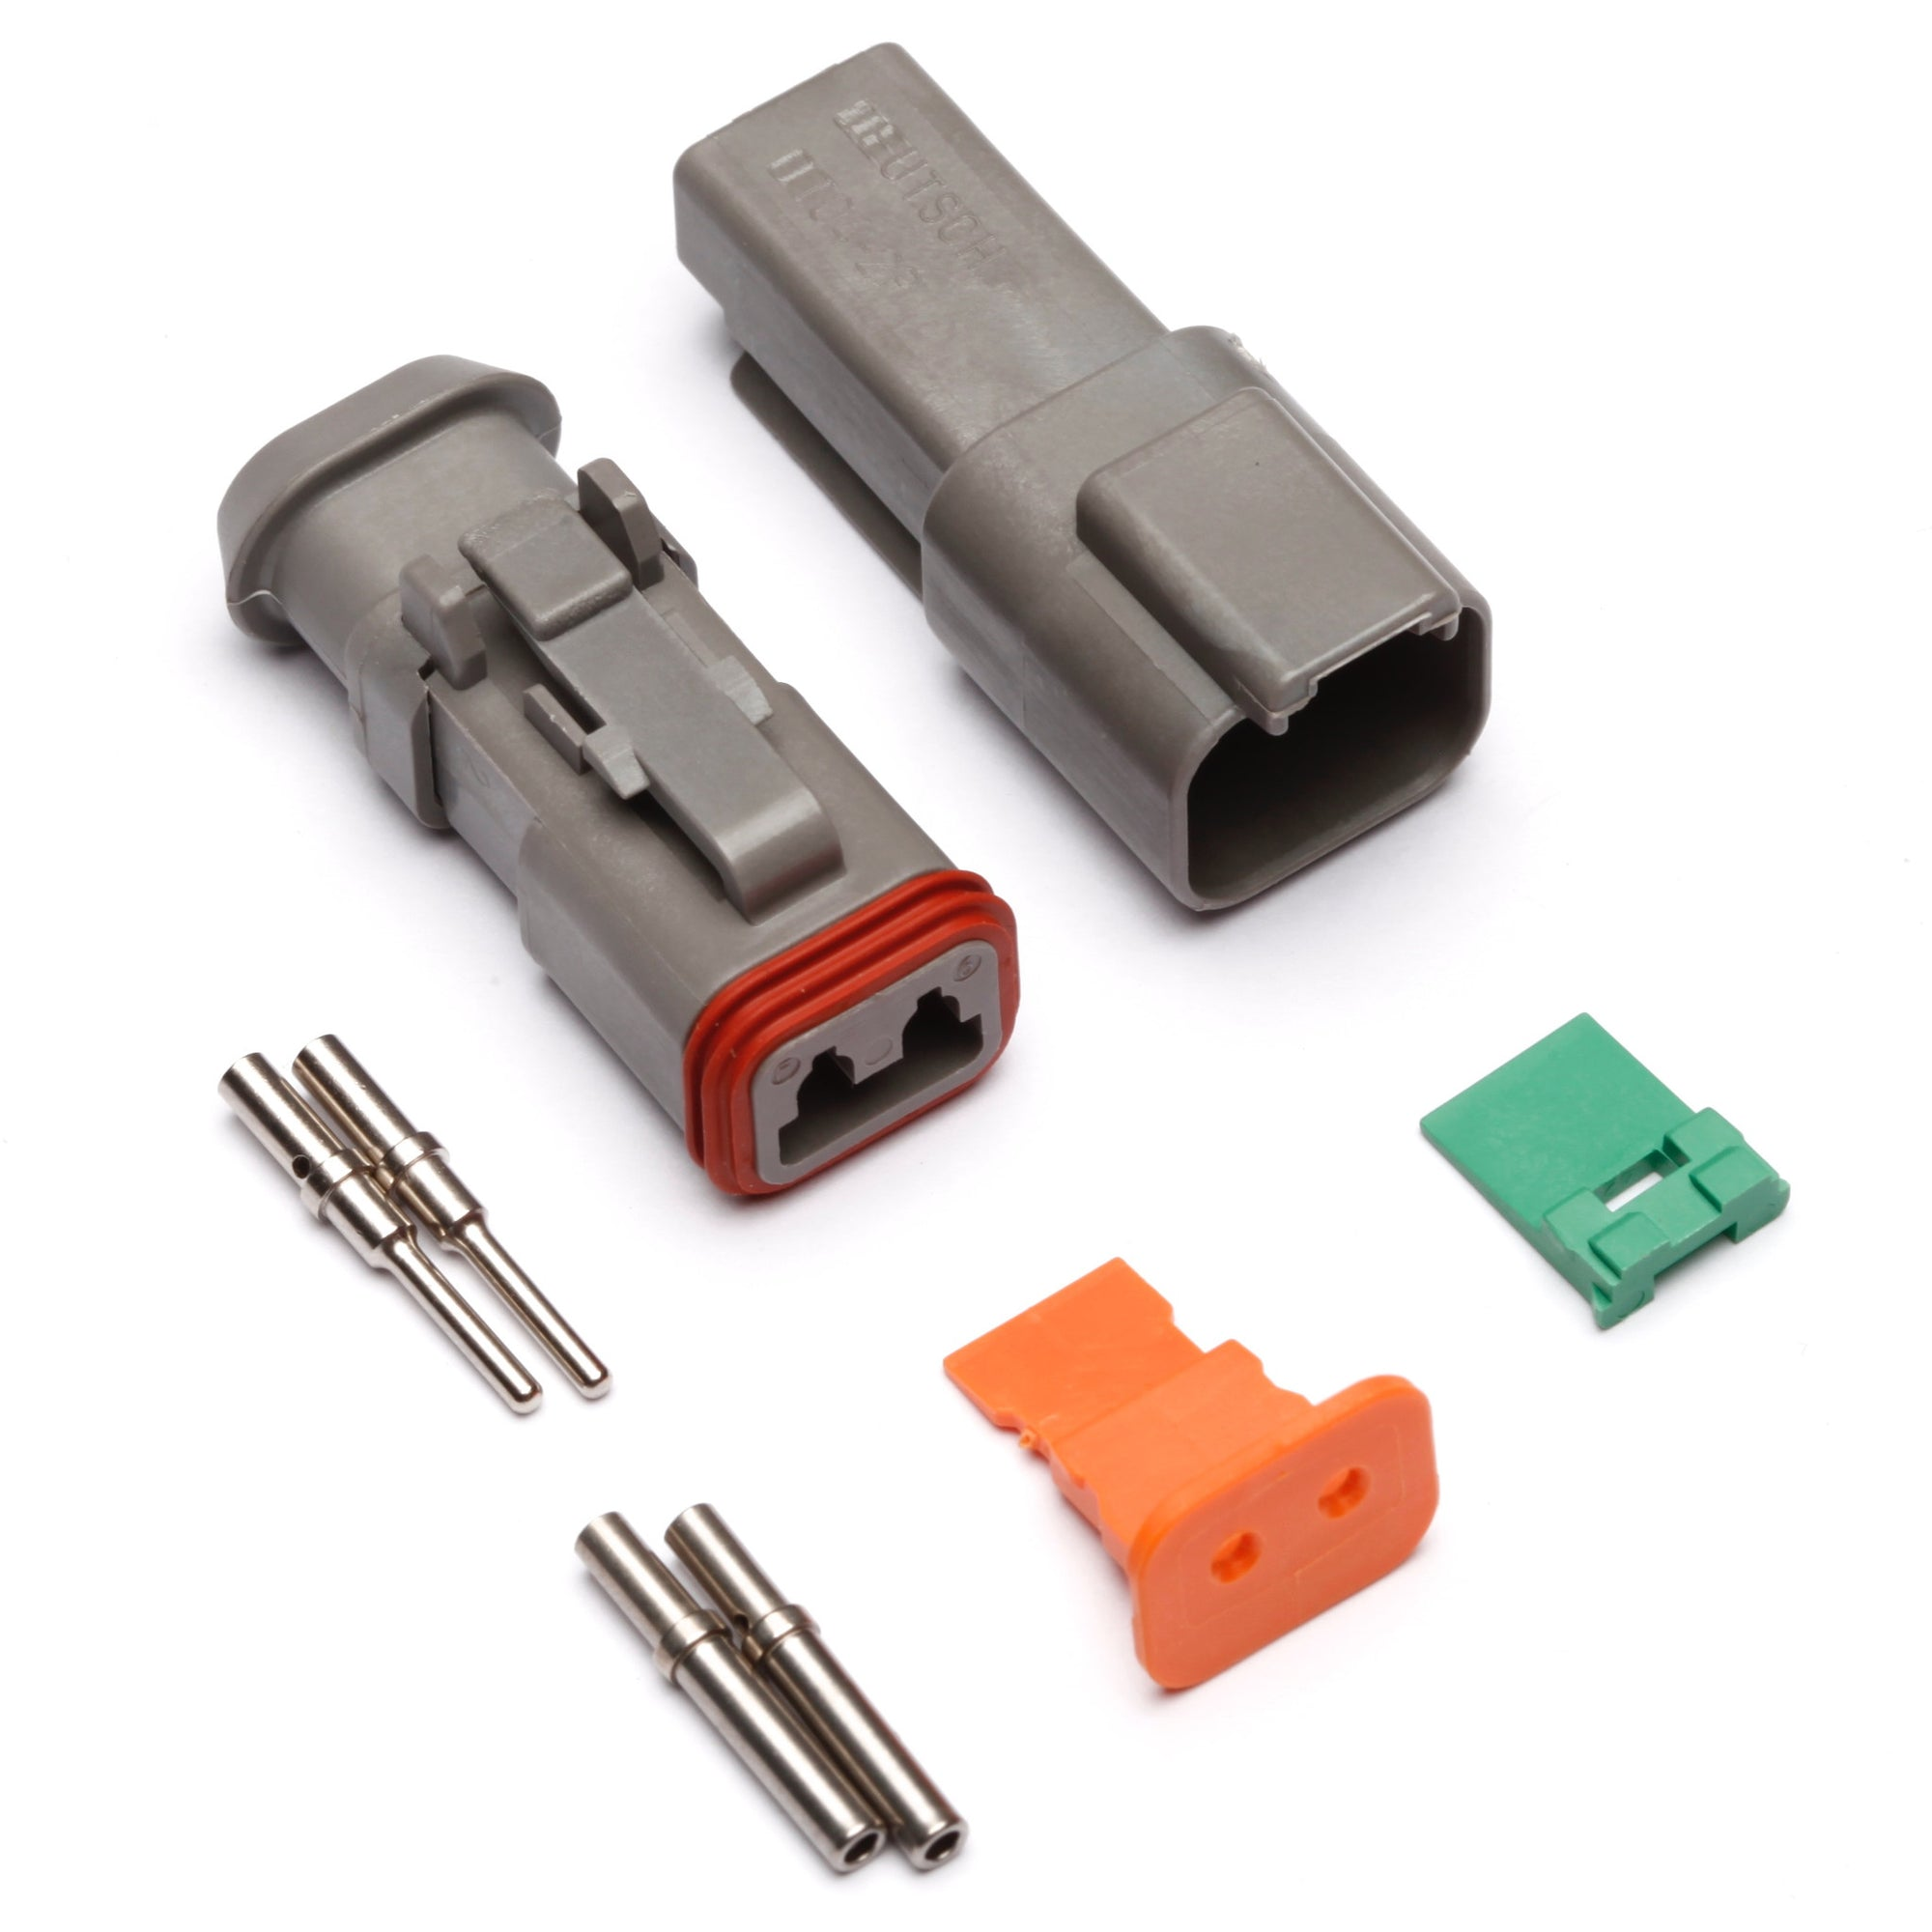 Connectors - DT Connector Kits